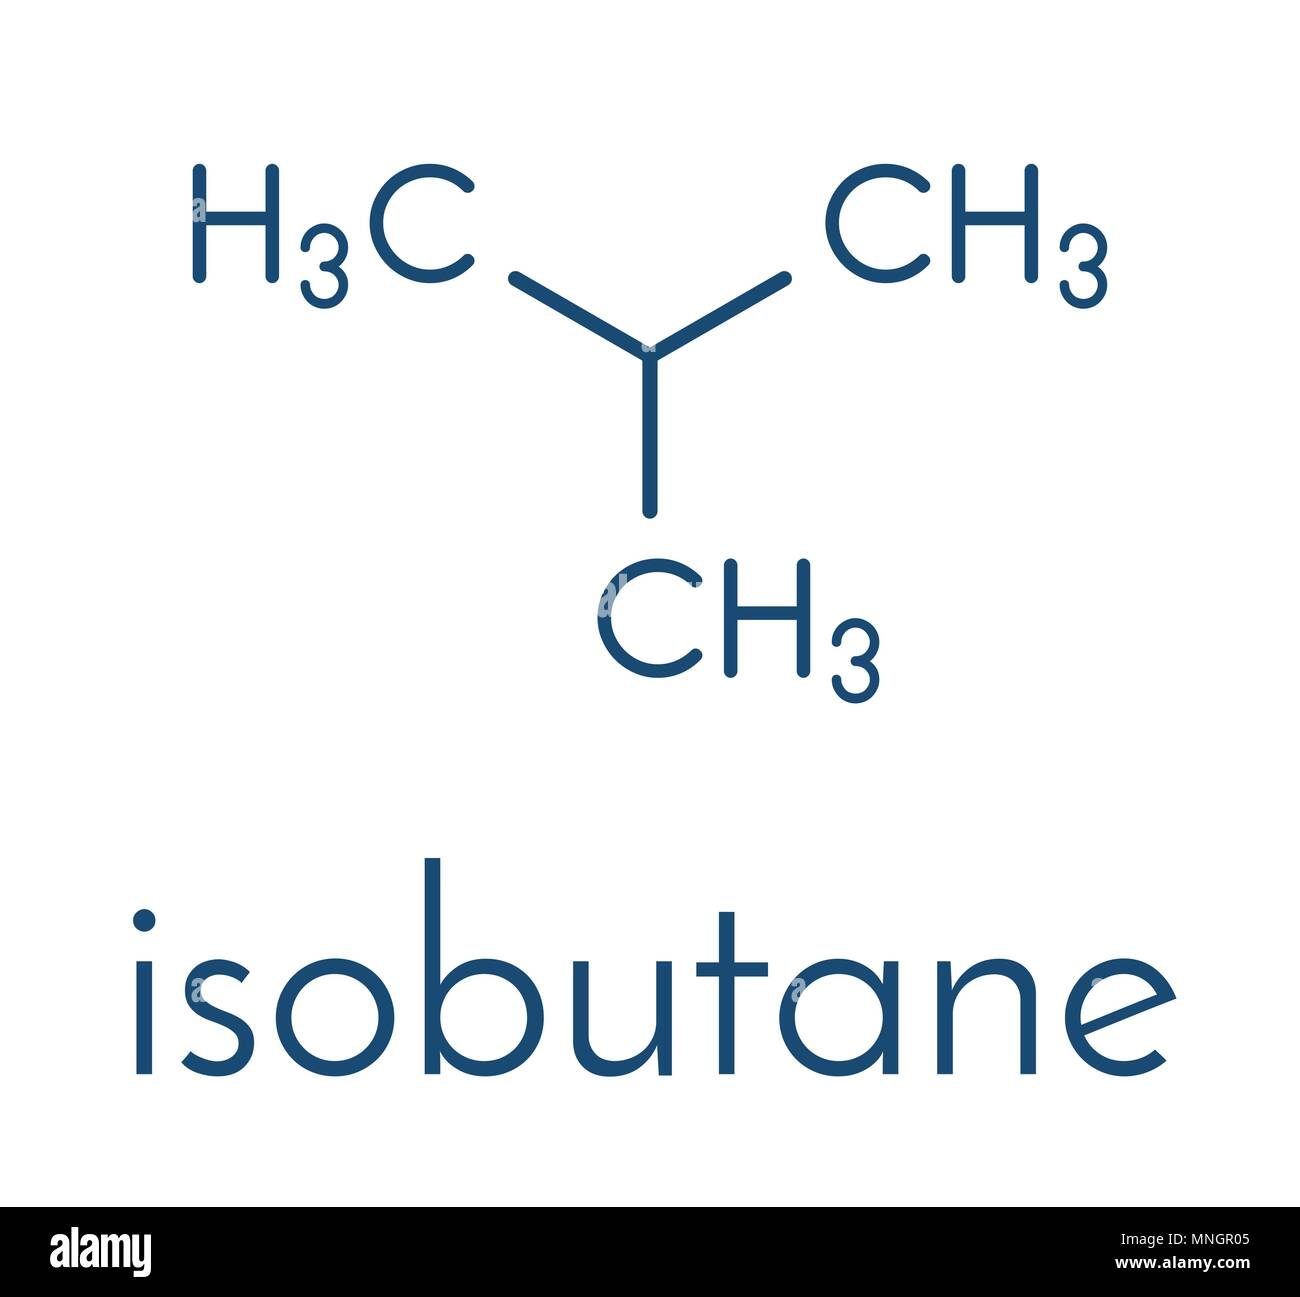 Isobutane (i-butane, methylpropane) alkane molecule. Used as refrigerant (in freezers and refrigerators) and as propellant (in aerosol sprays). Skelet - Stock Image